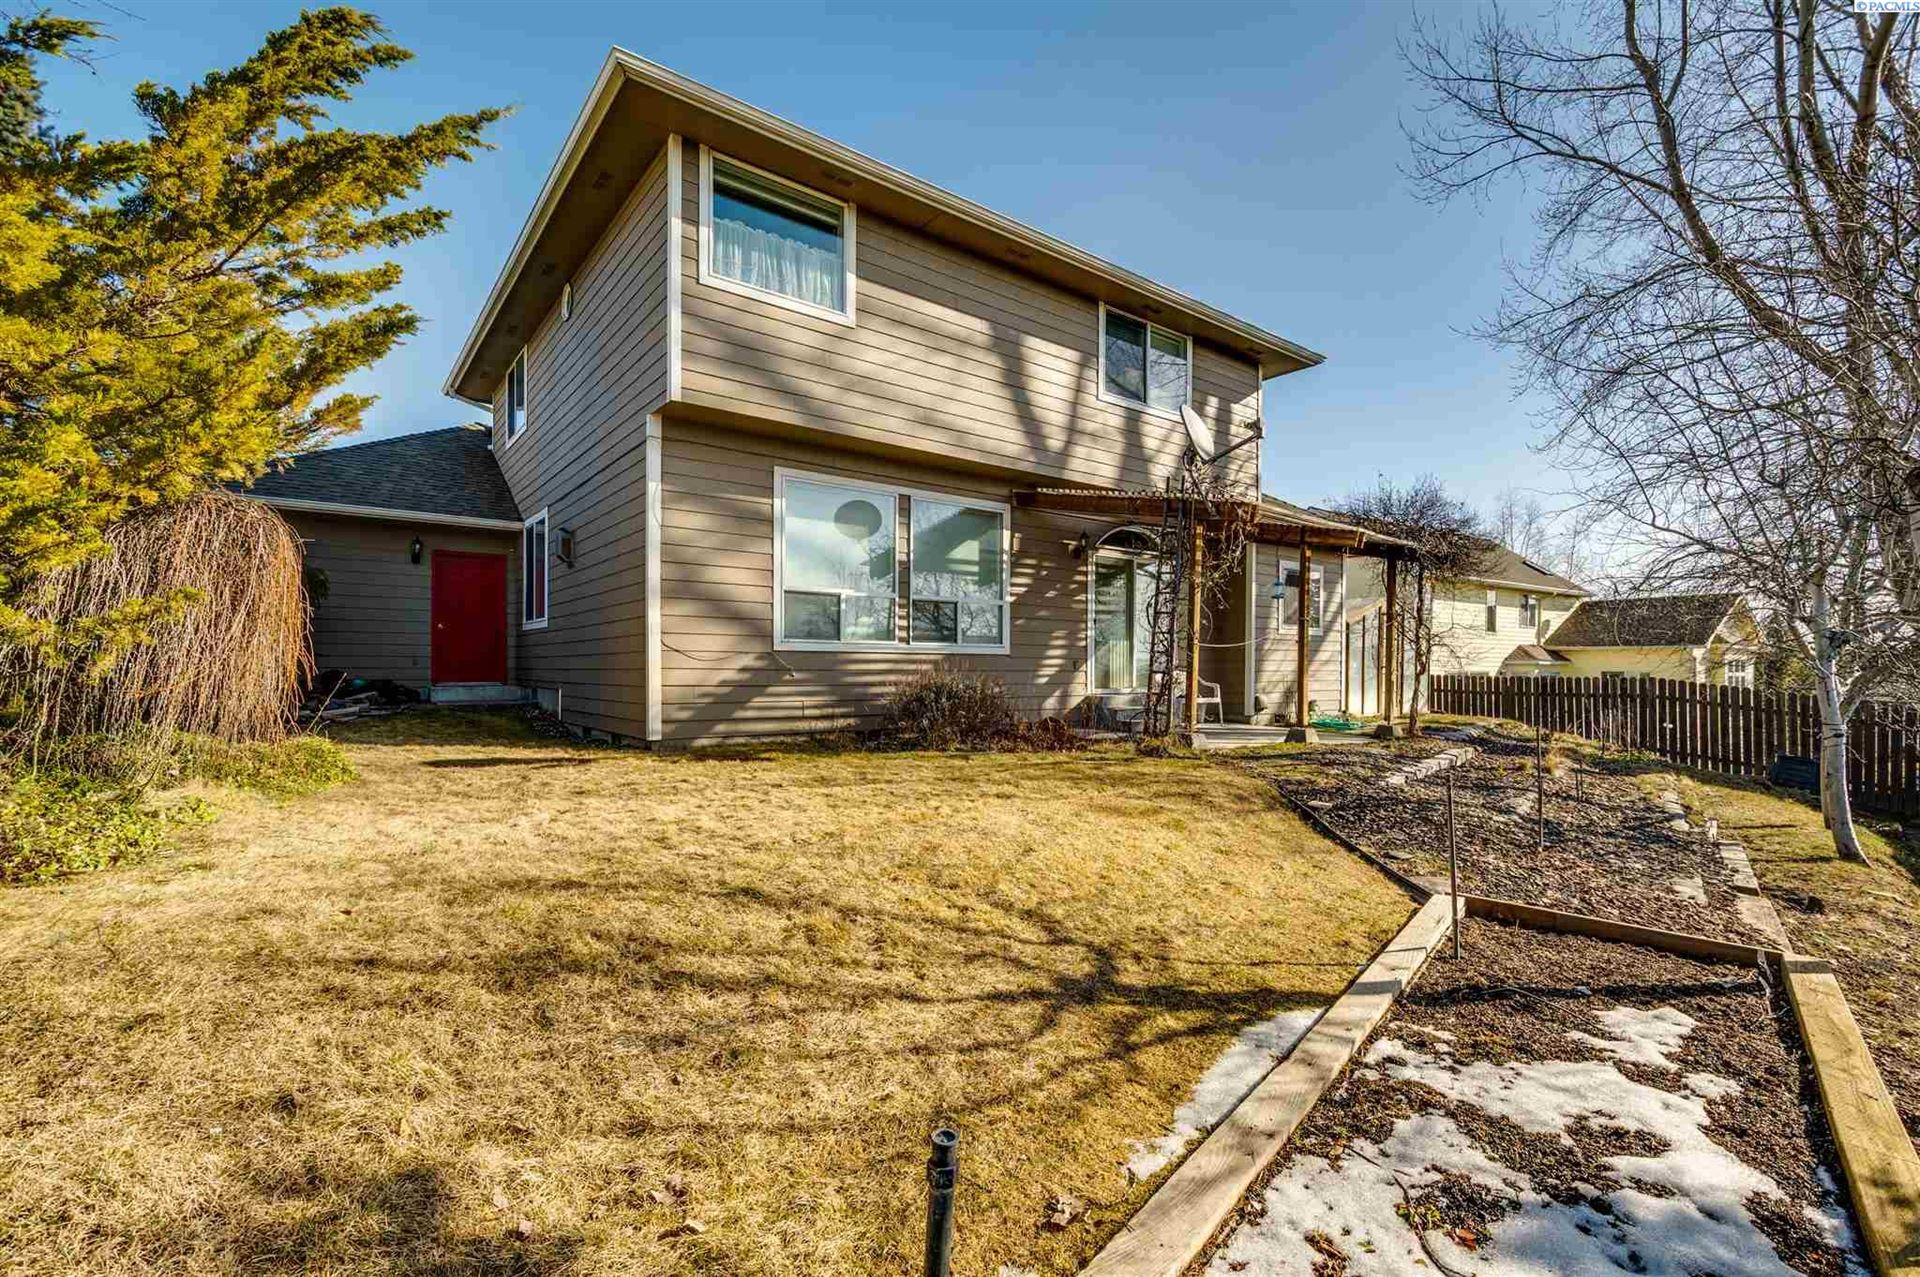 Photo of 715 SE Pheasant Run, Pullman, WA 99163 (MLS # 251428)